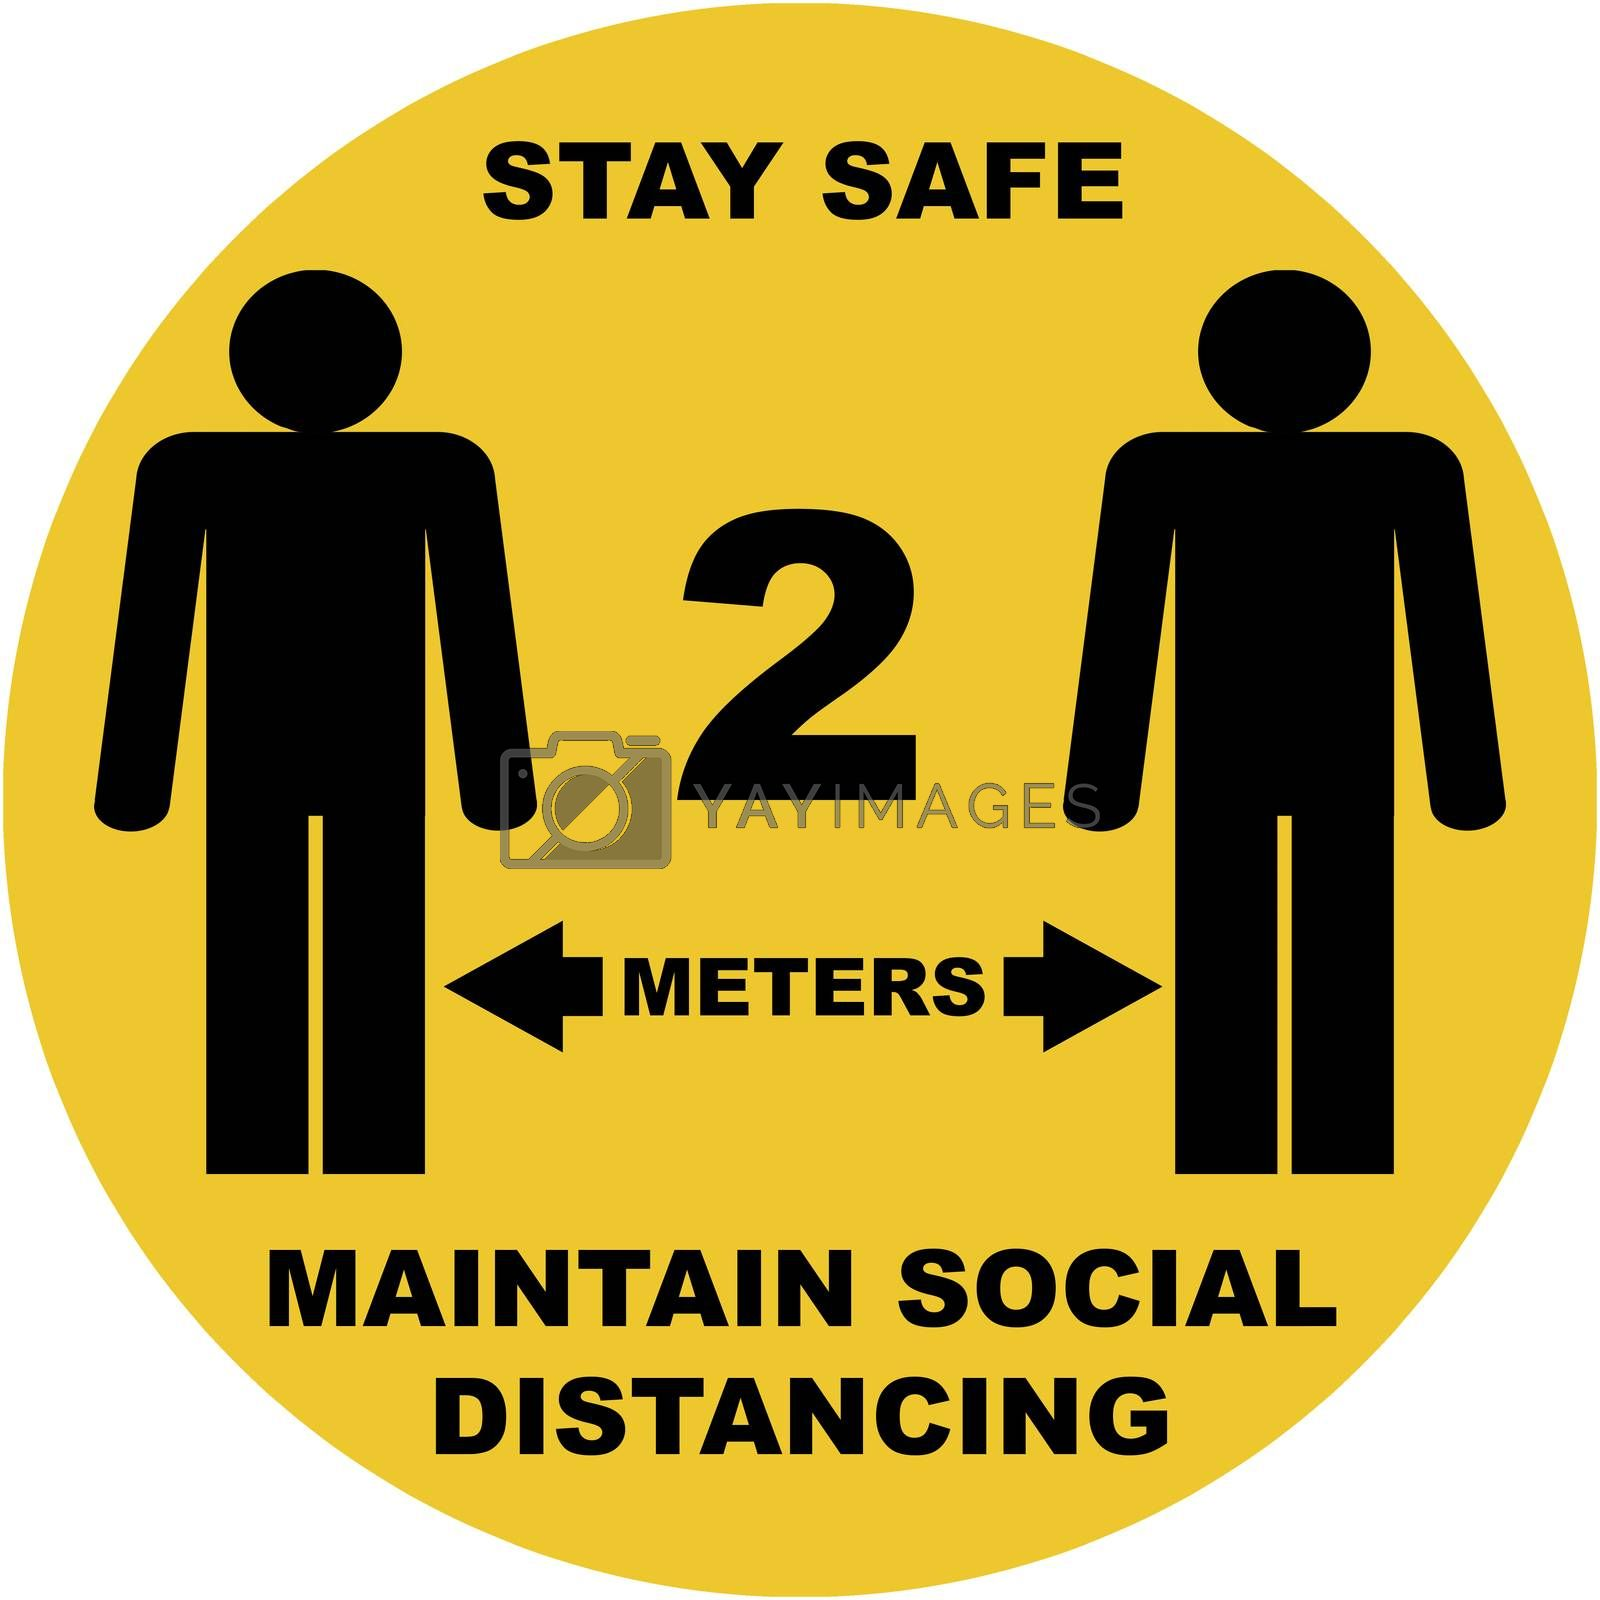 Social distance sign board with two persons, arrows, text with distances in feet and meters